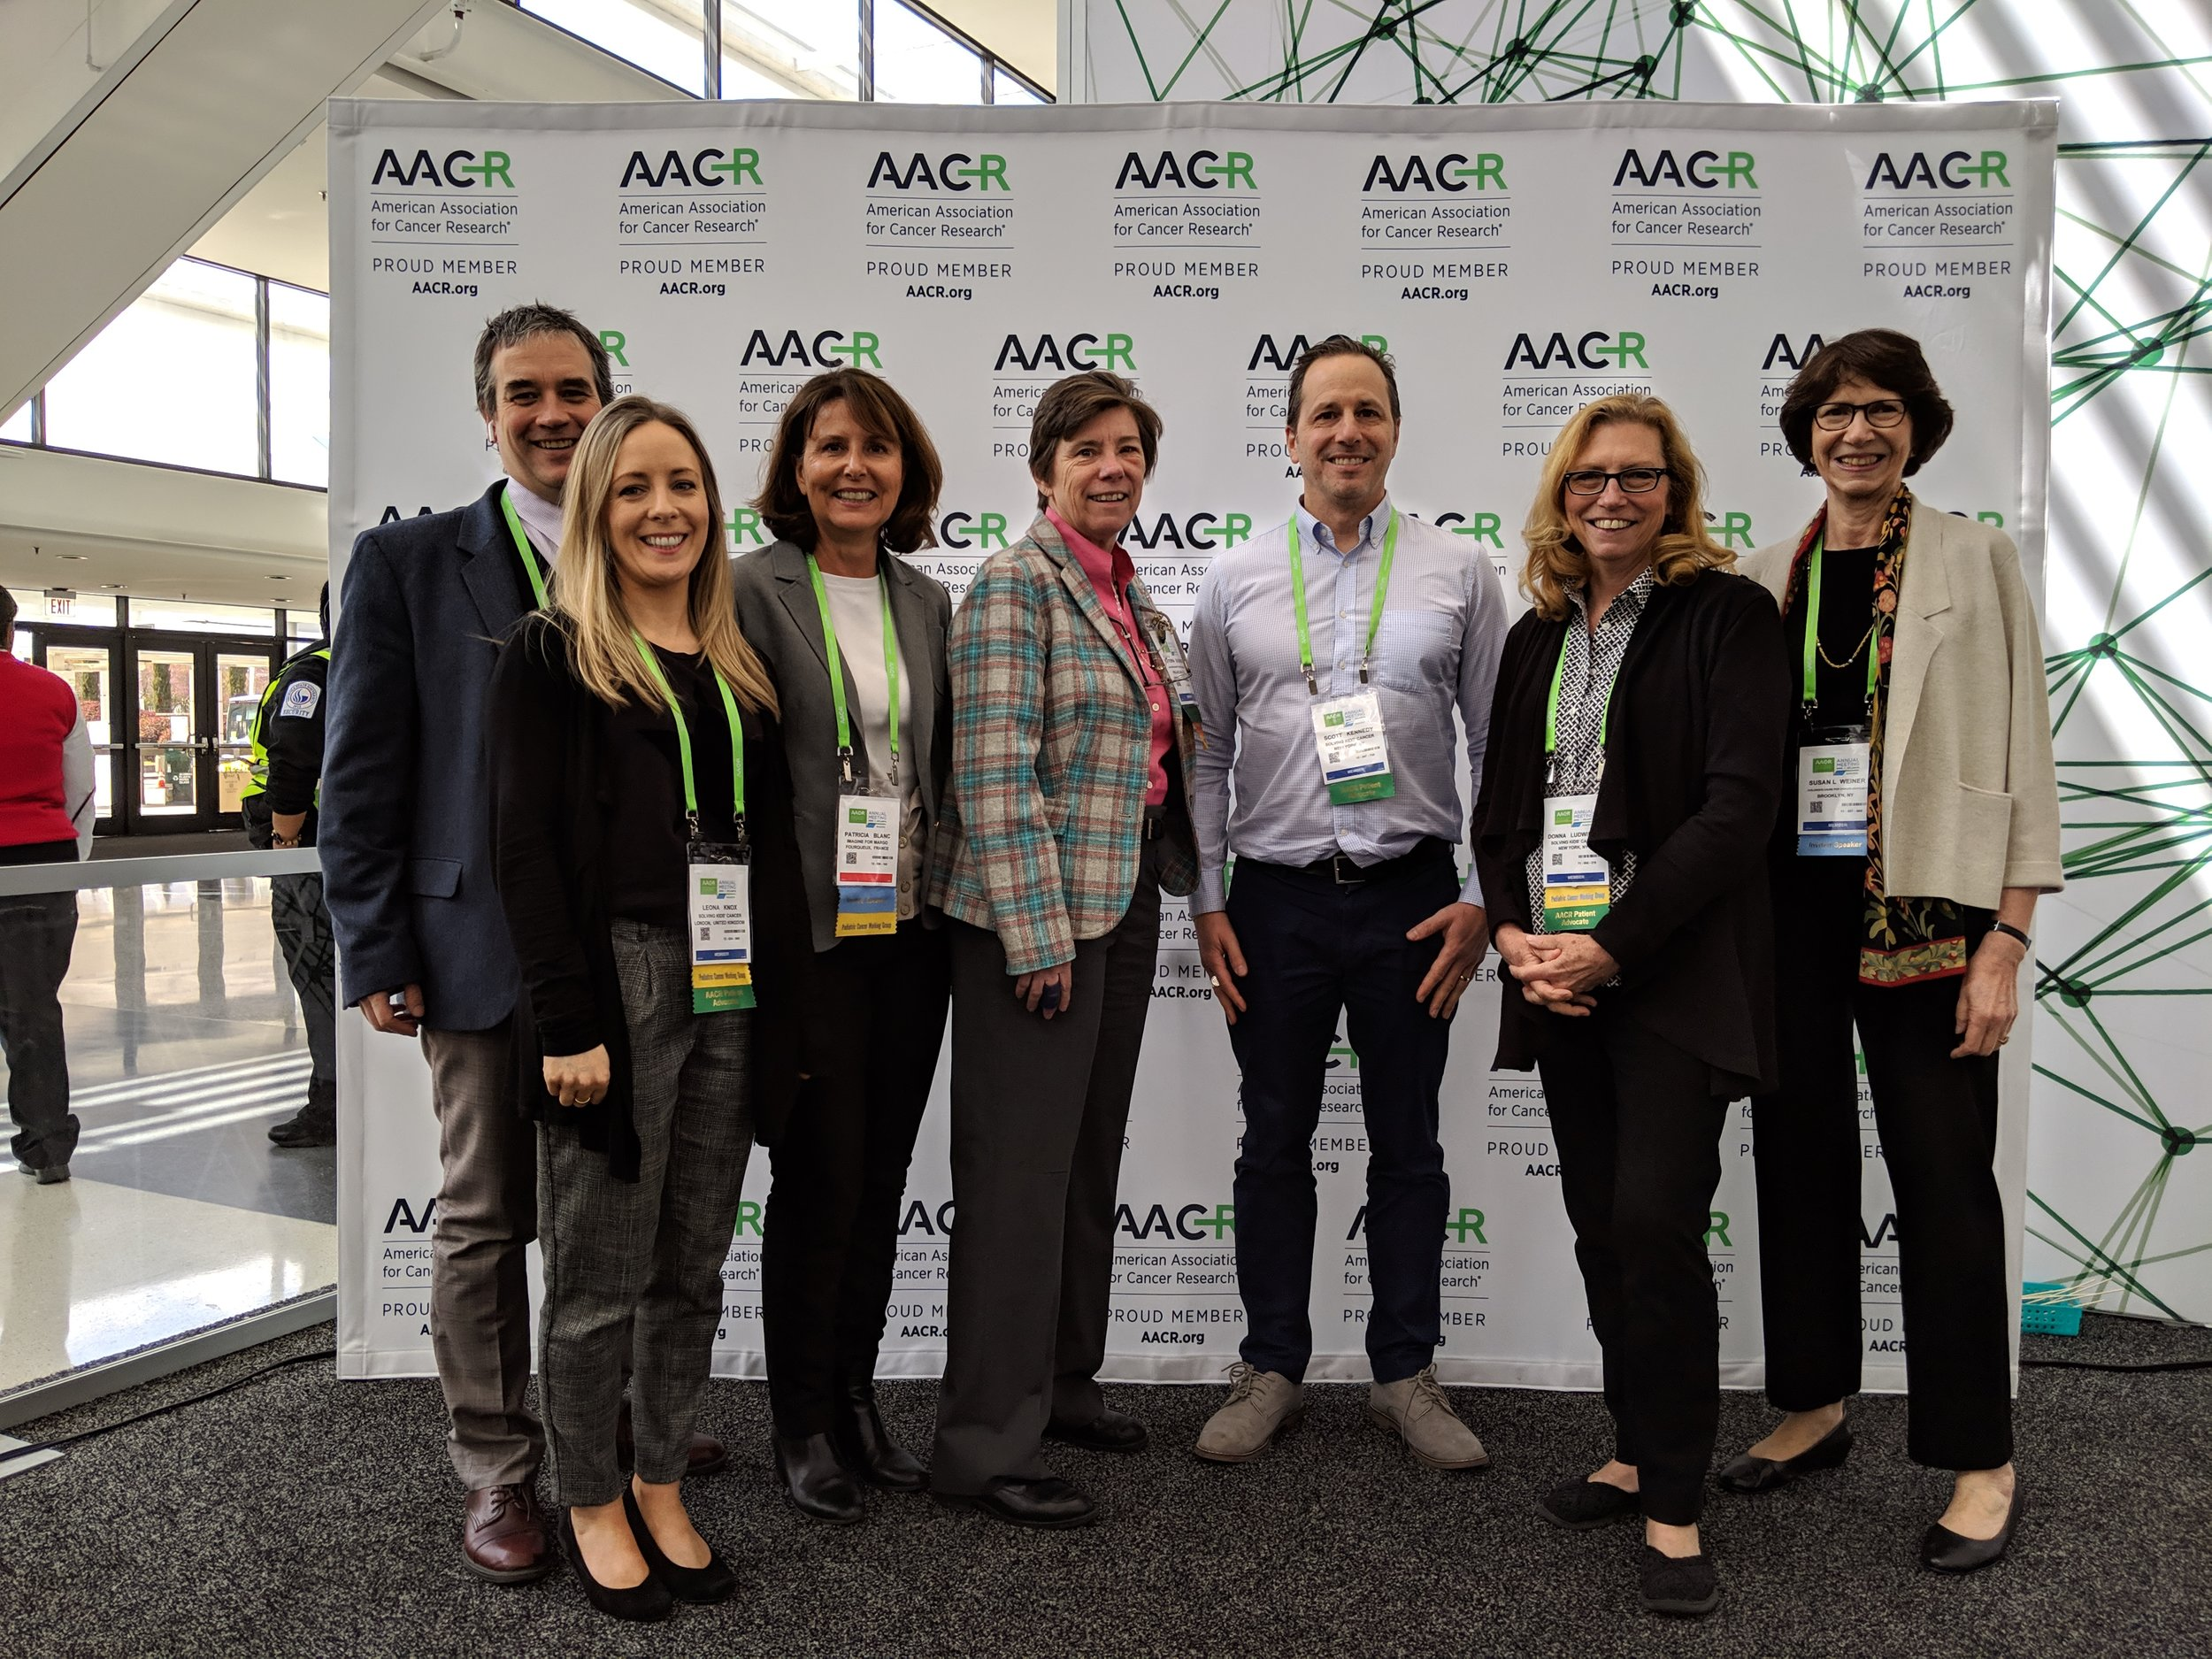 Photo: Childhood cancer advocates gather at the 2019 American Association for Cancer Research. At far right is CCCA's founder Susan L. Weiner, PhD.